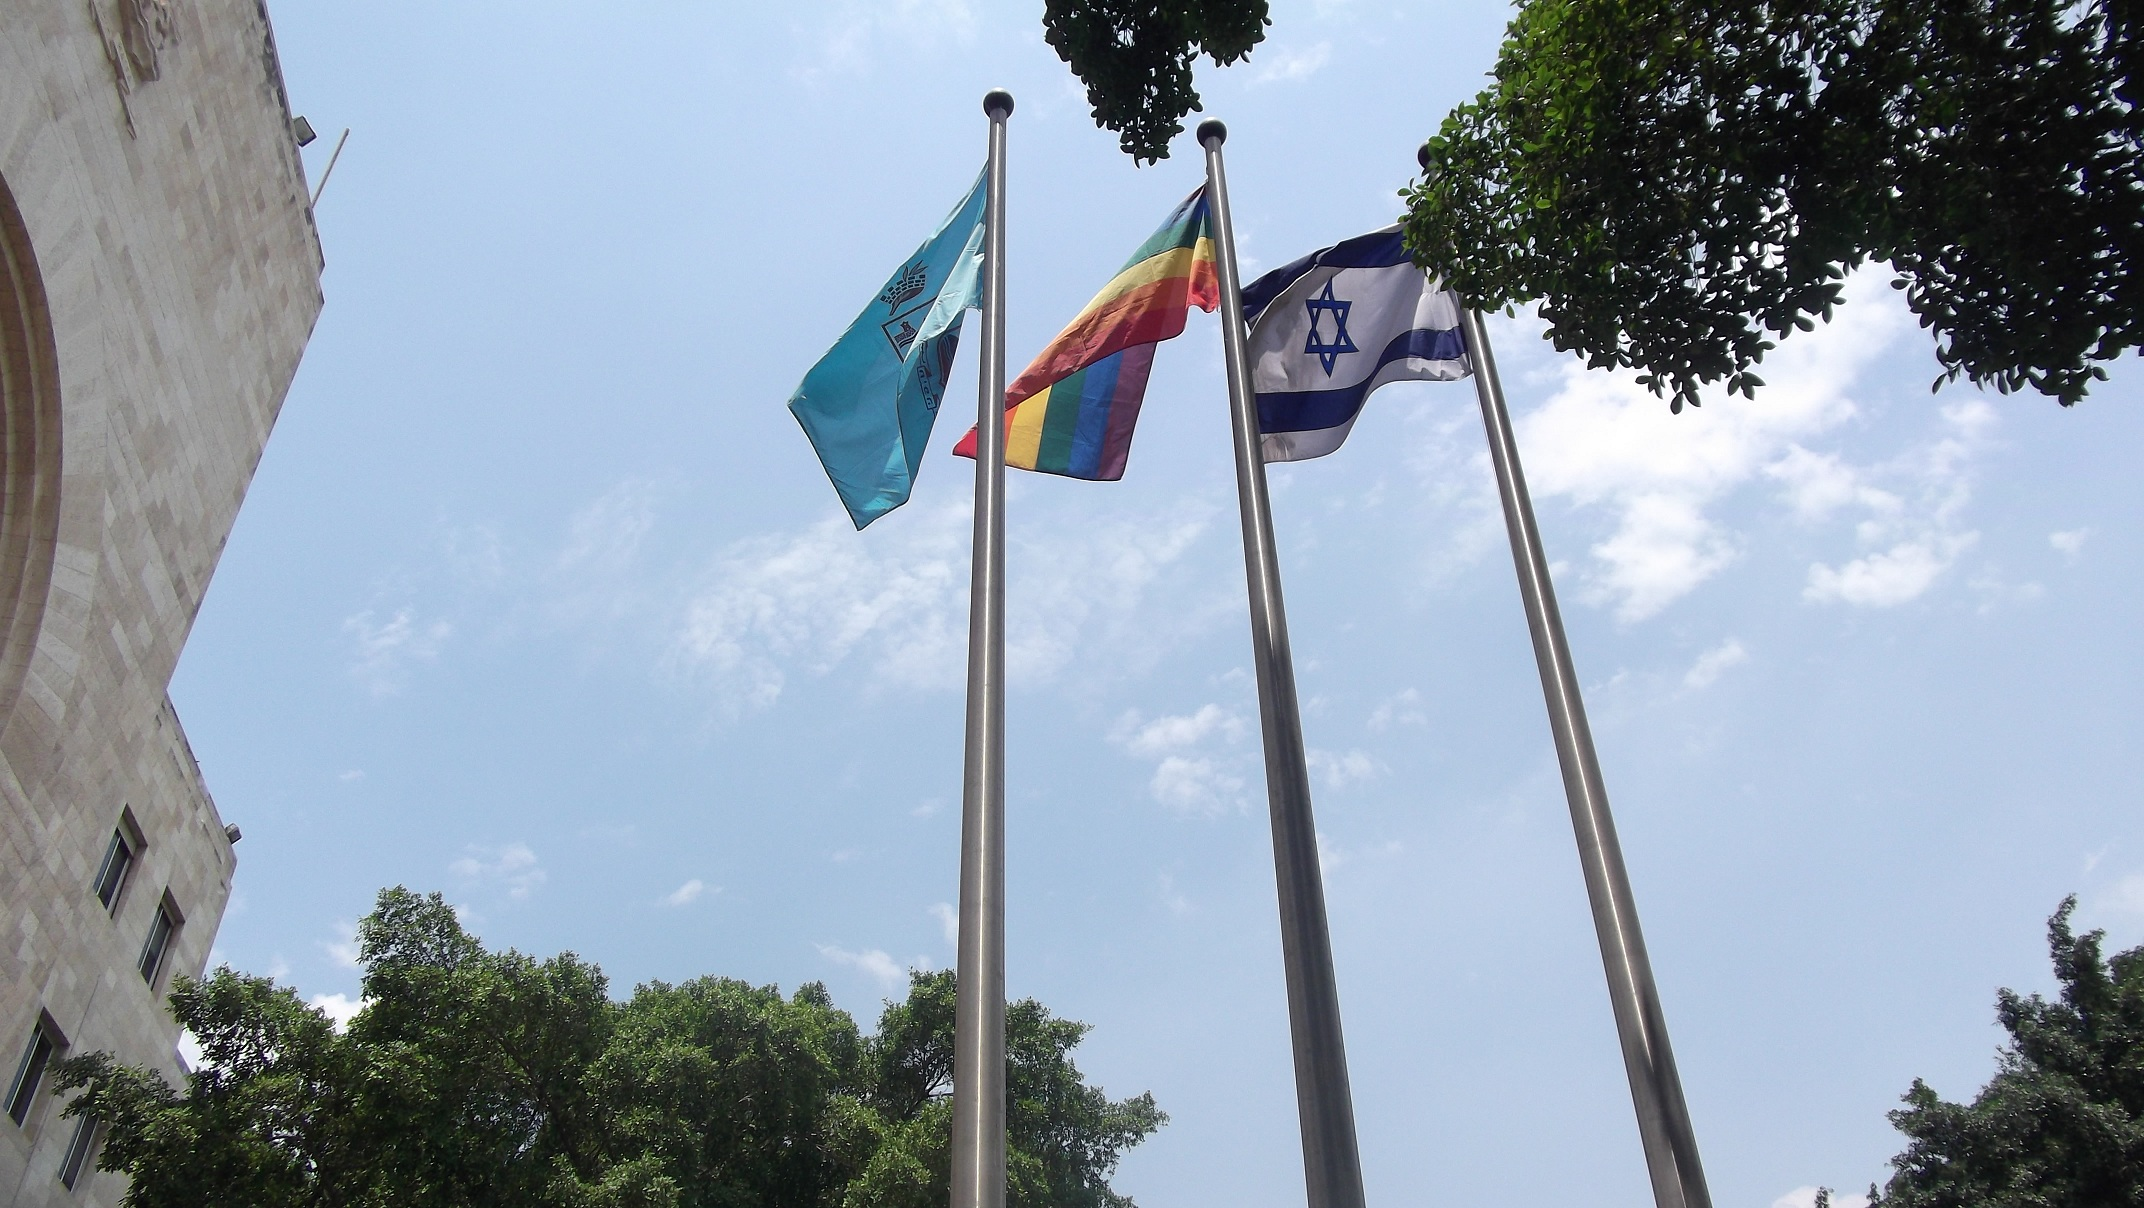 When the March reached City Hall a man went up to raise the rainbow flag in between the flags for Israel and Haifa resulting in huge cheers all around